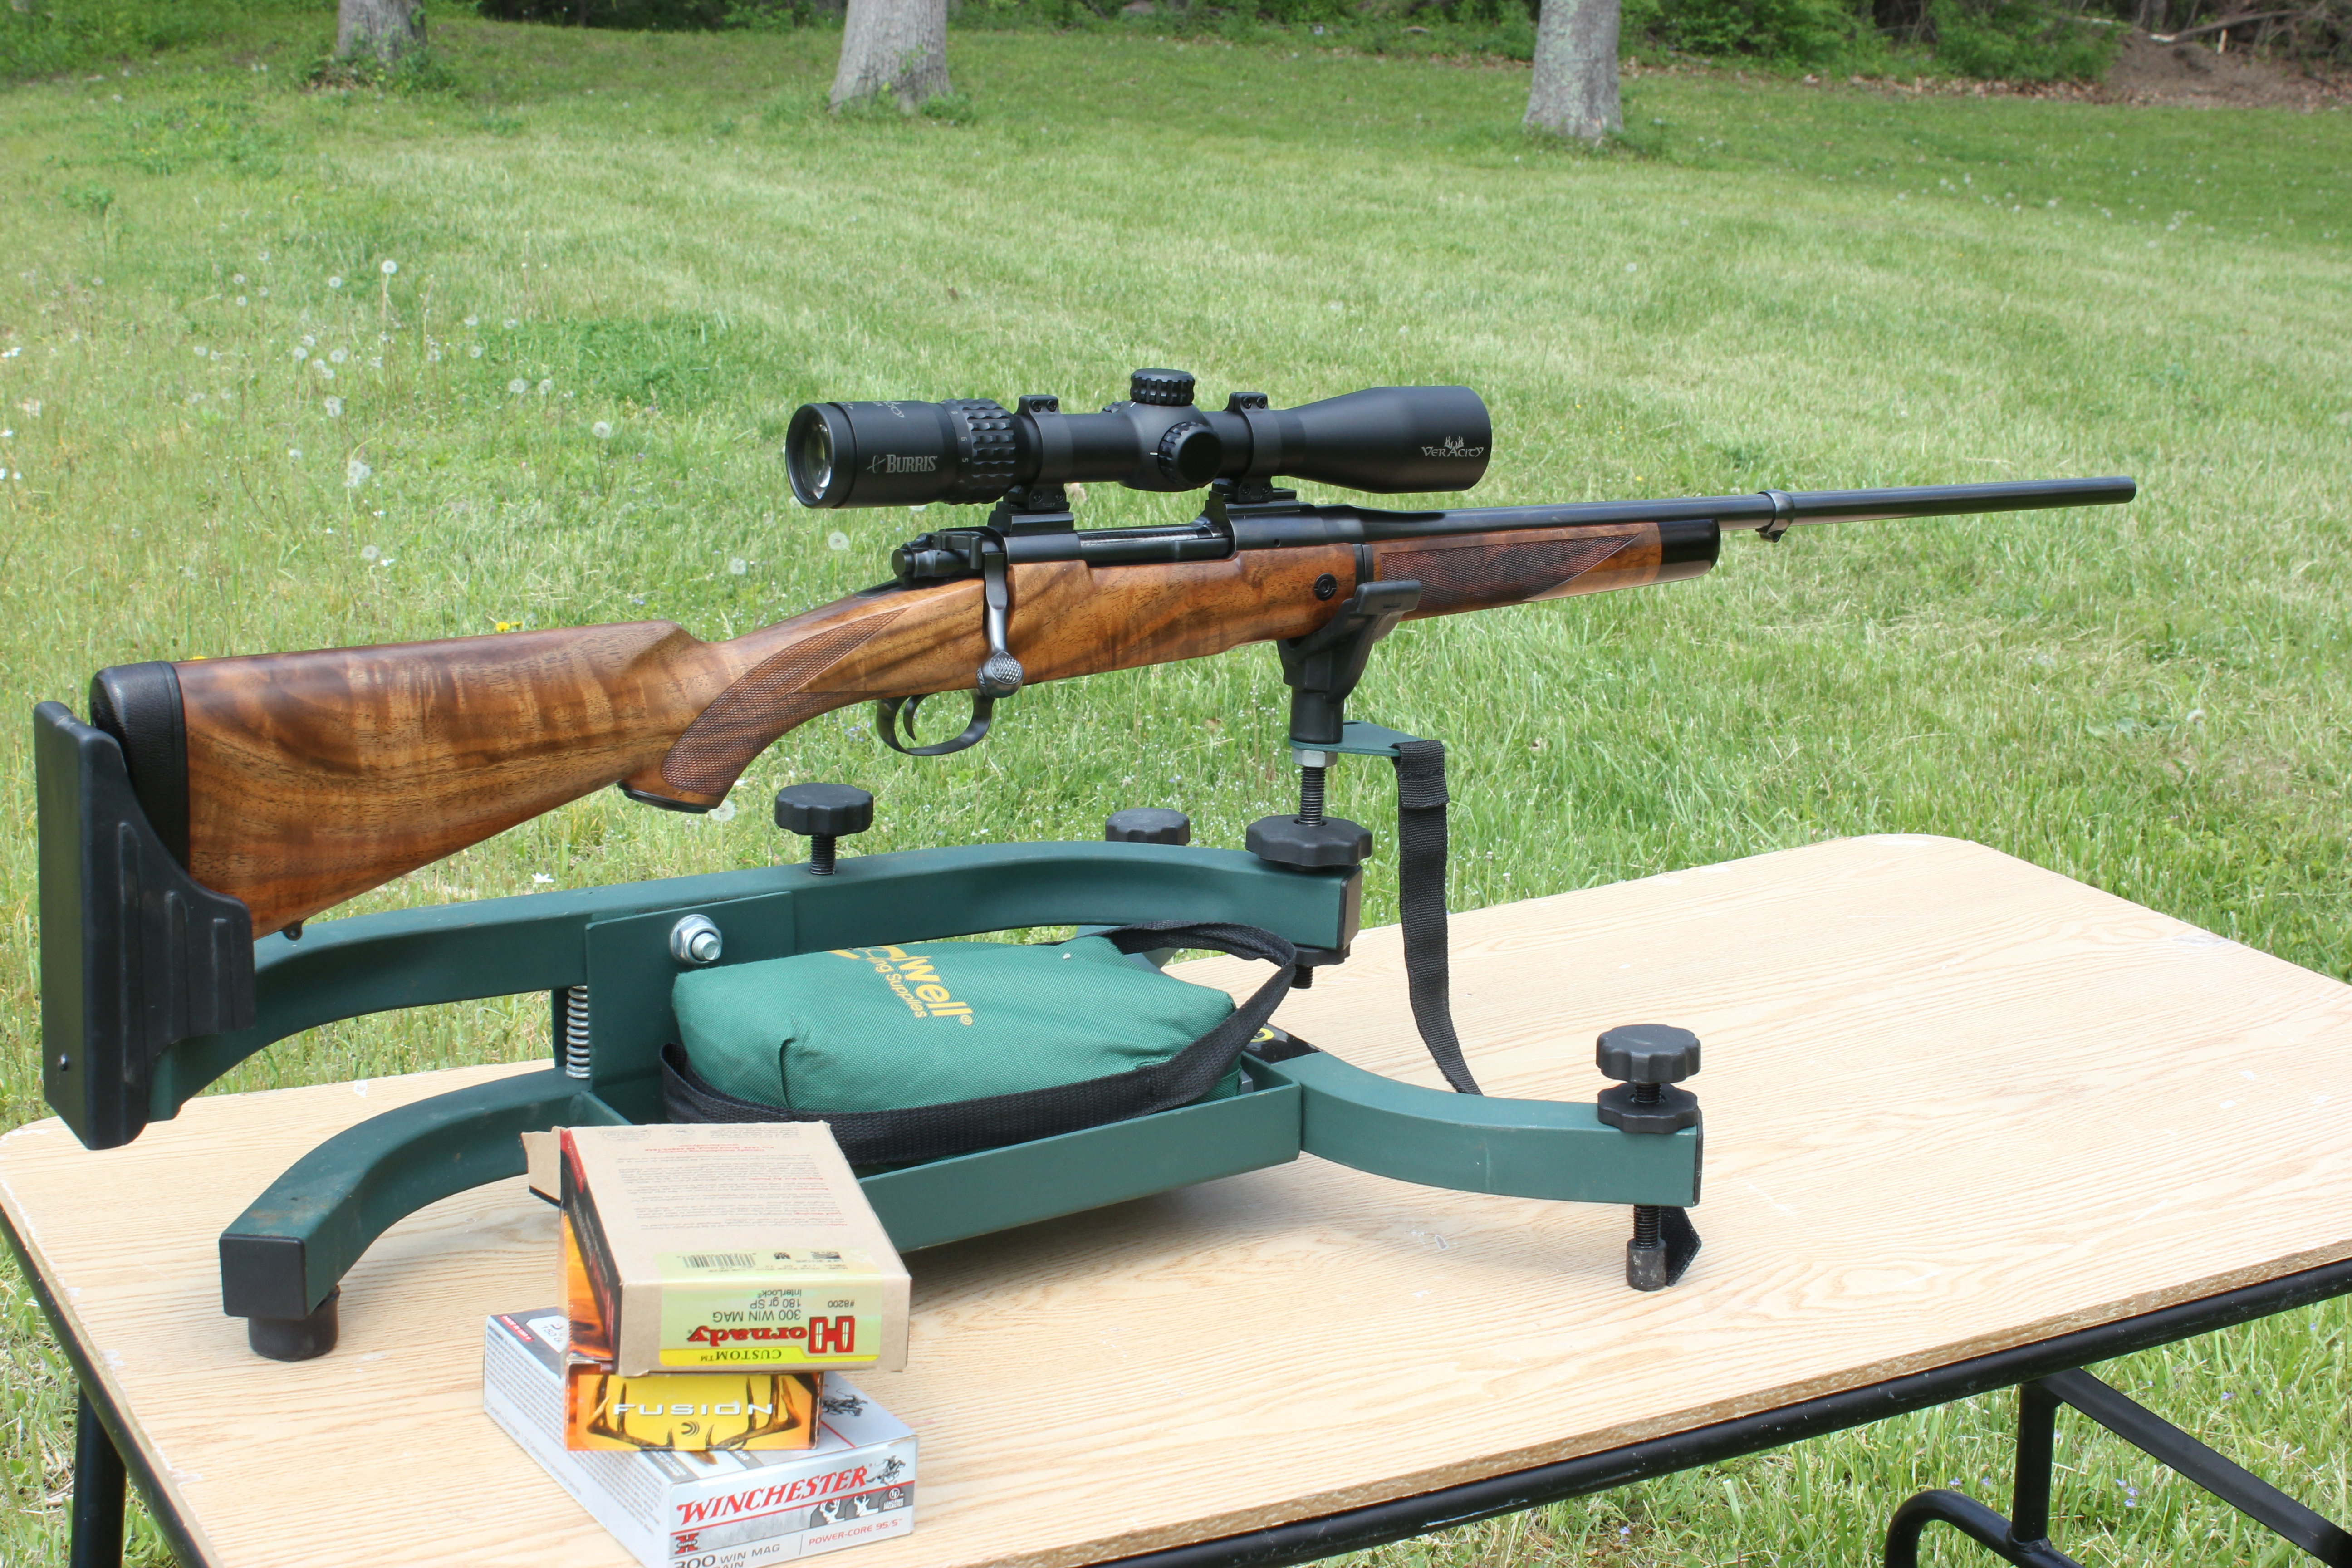 Forum on this topic: How to Bore Sight a Rifle, how-to-bore-sight-a-rifle/